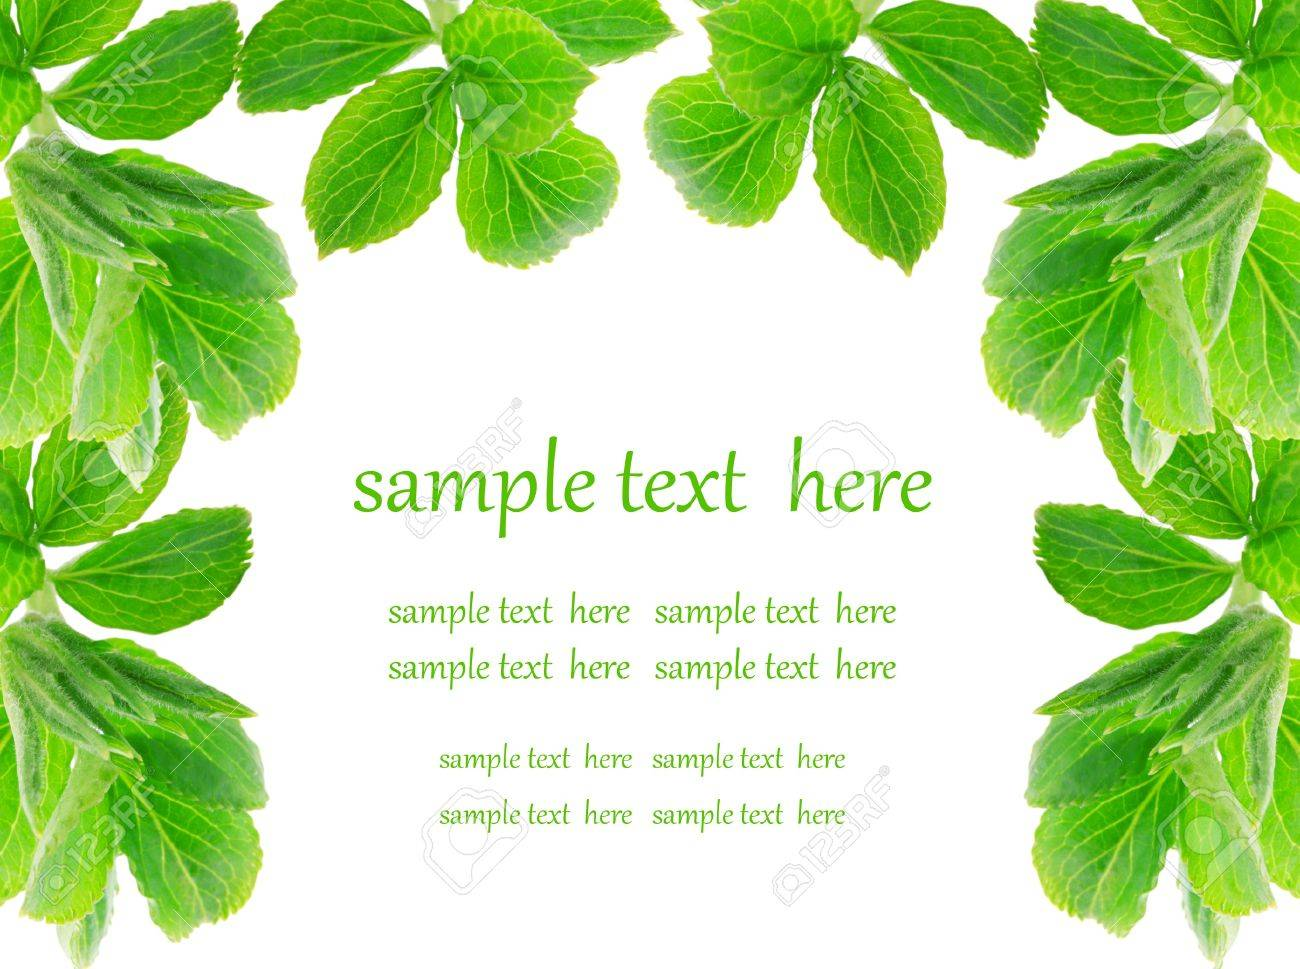 green leaves on white background Stock Photo - 9988238